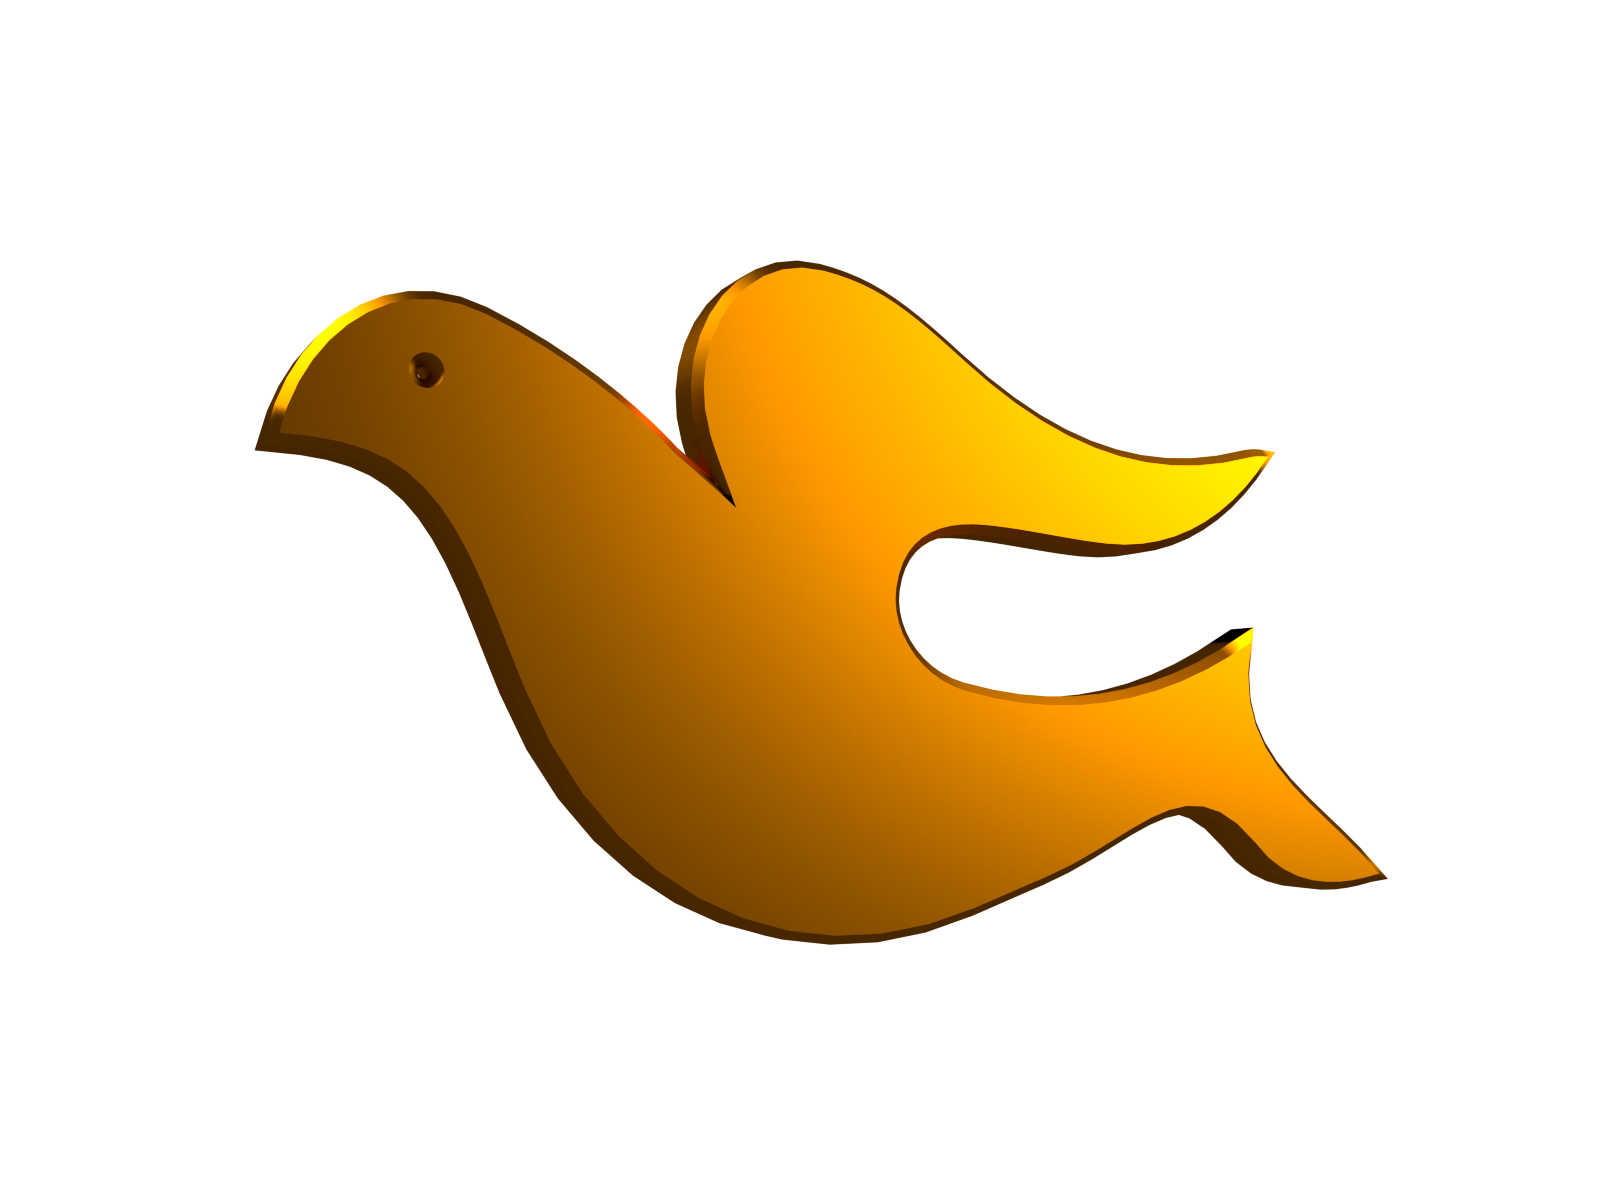 Park high res files. Christian dove png picture transparent stock